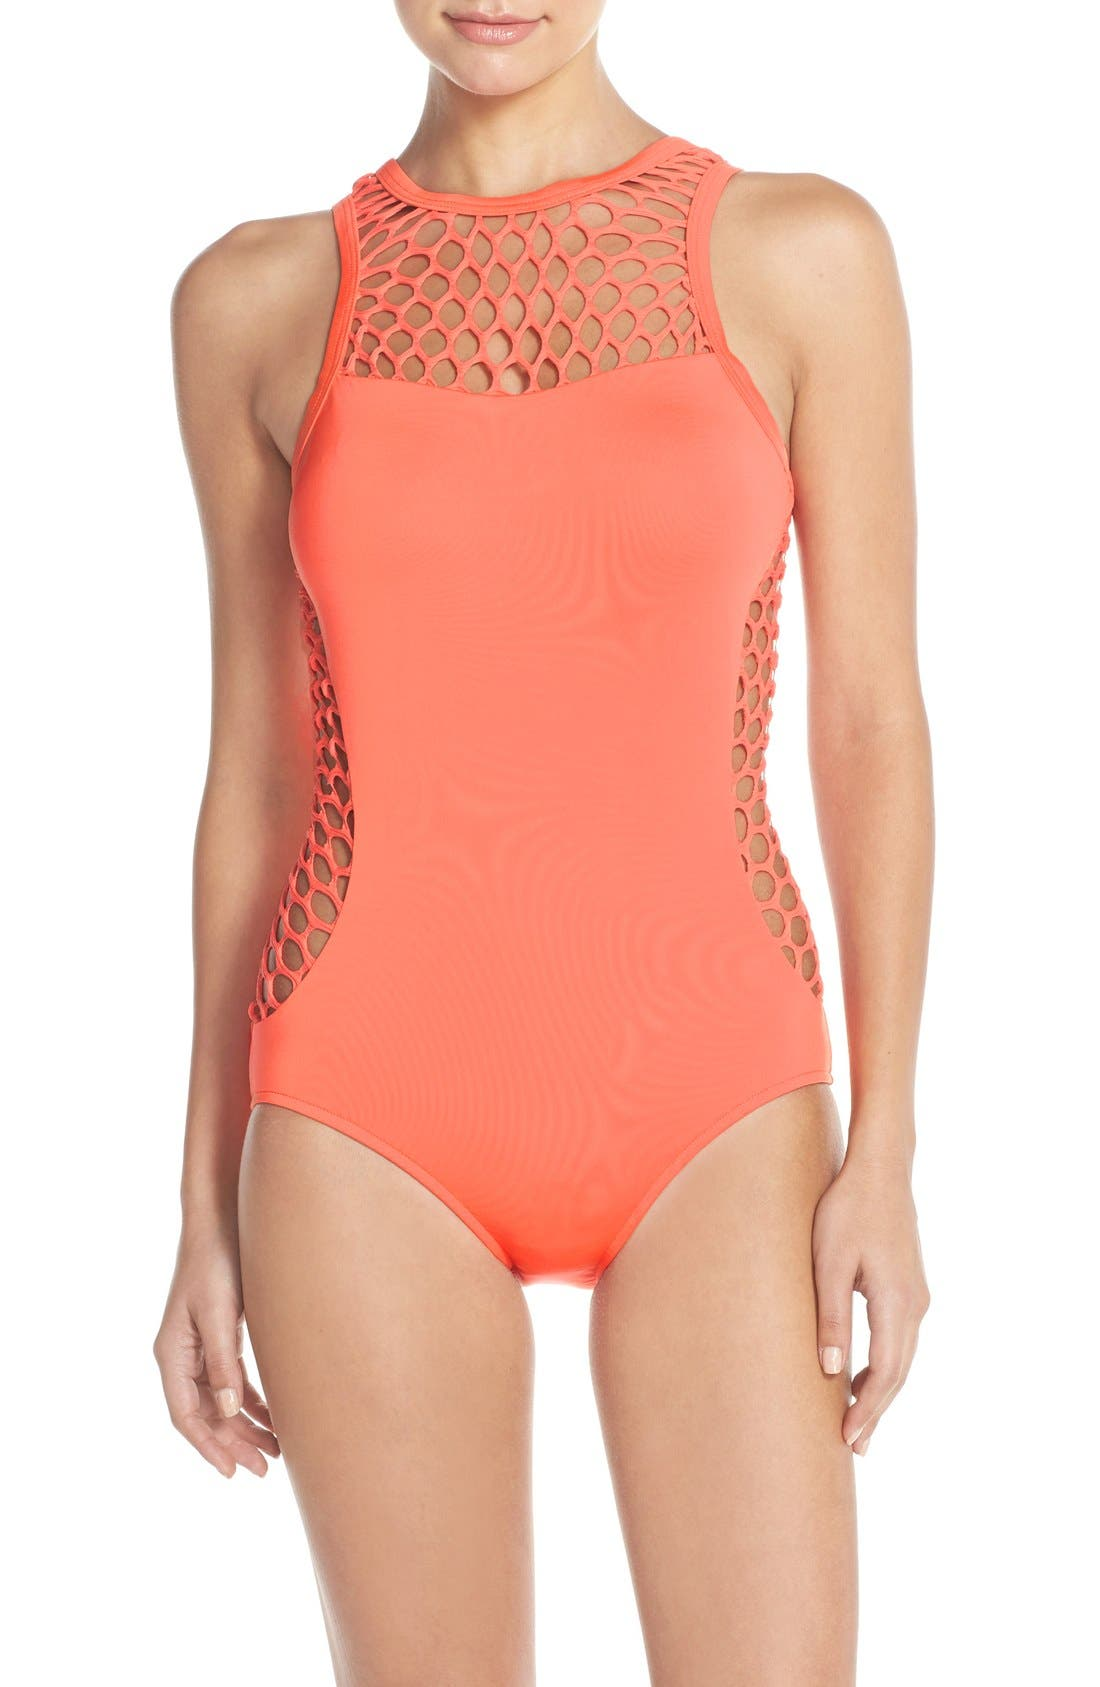 Alternate Image 1 Selected - Seafolly 'Mesh About' High Neck One-Piece Swimsuit